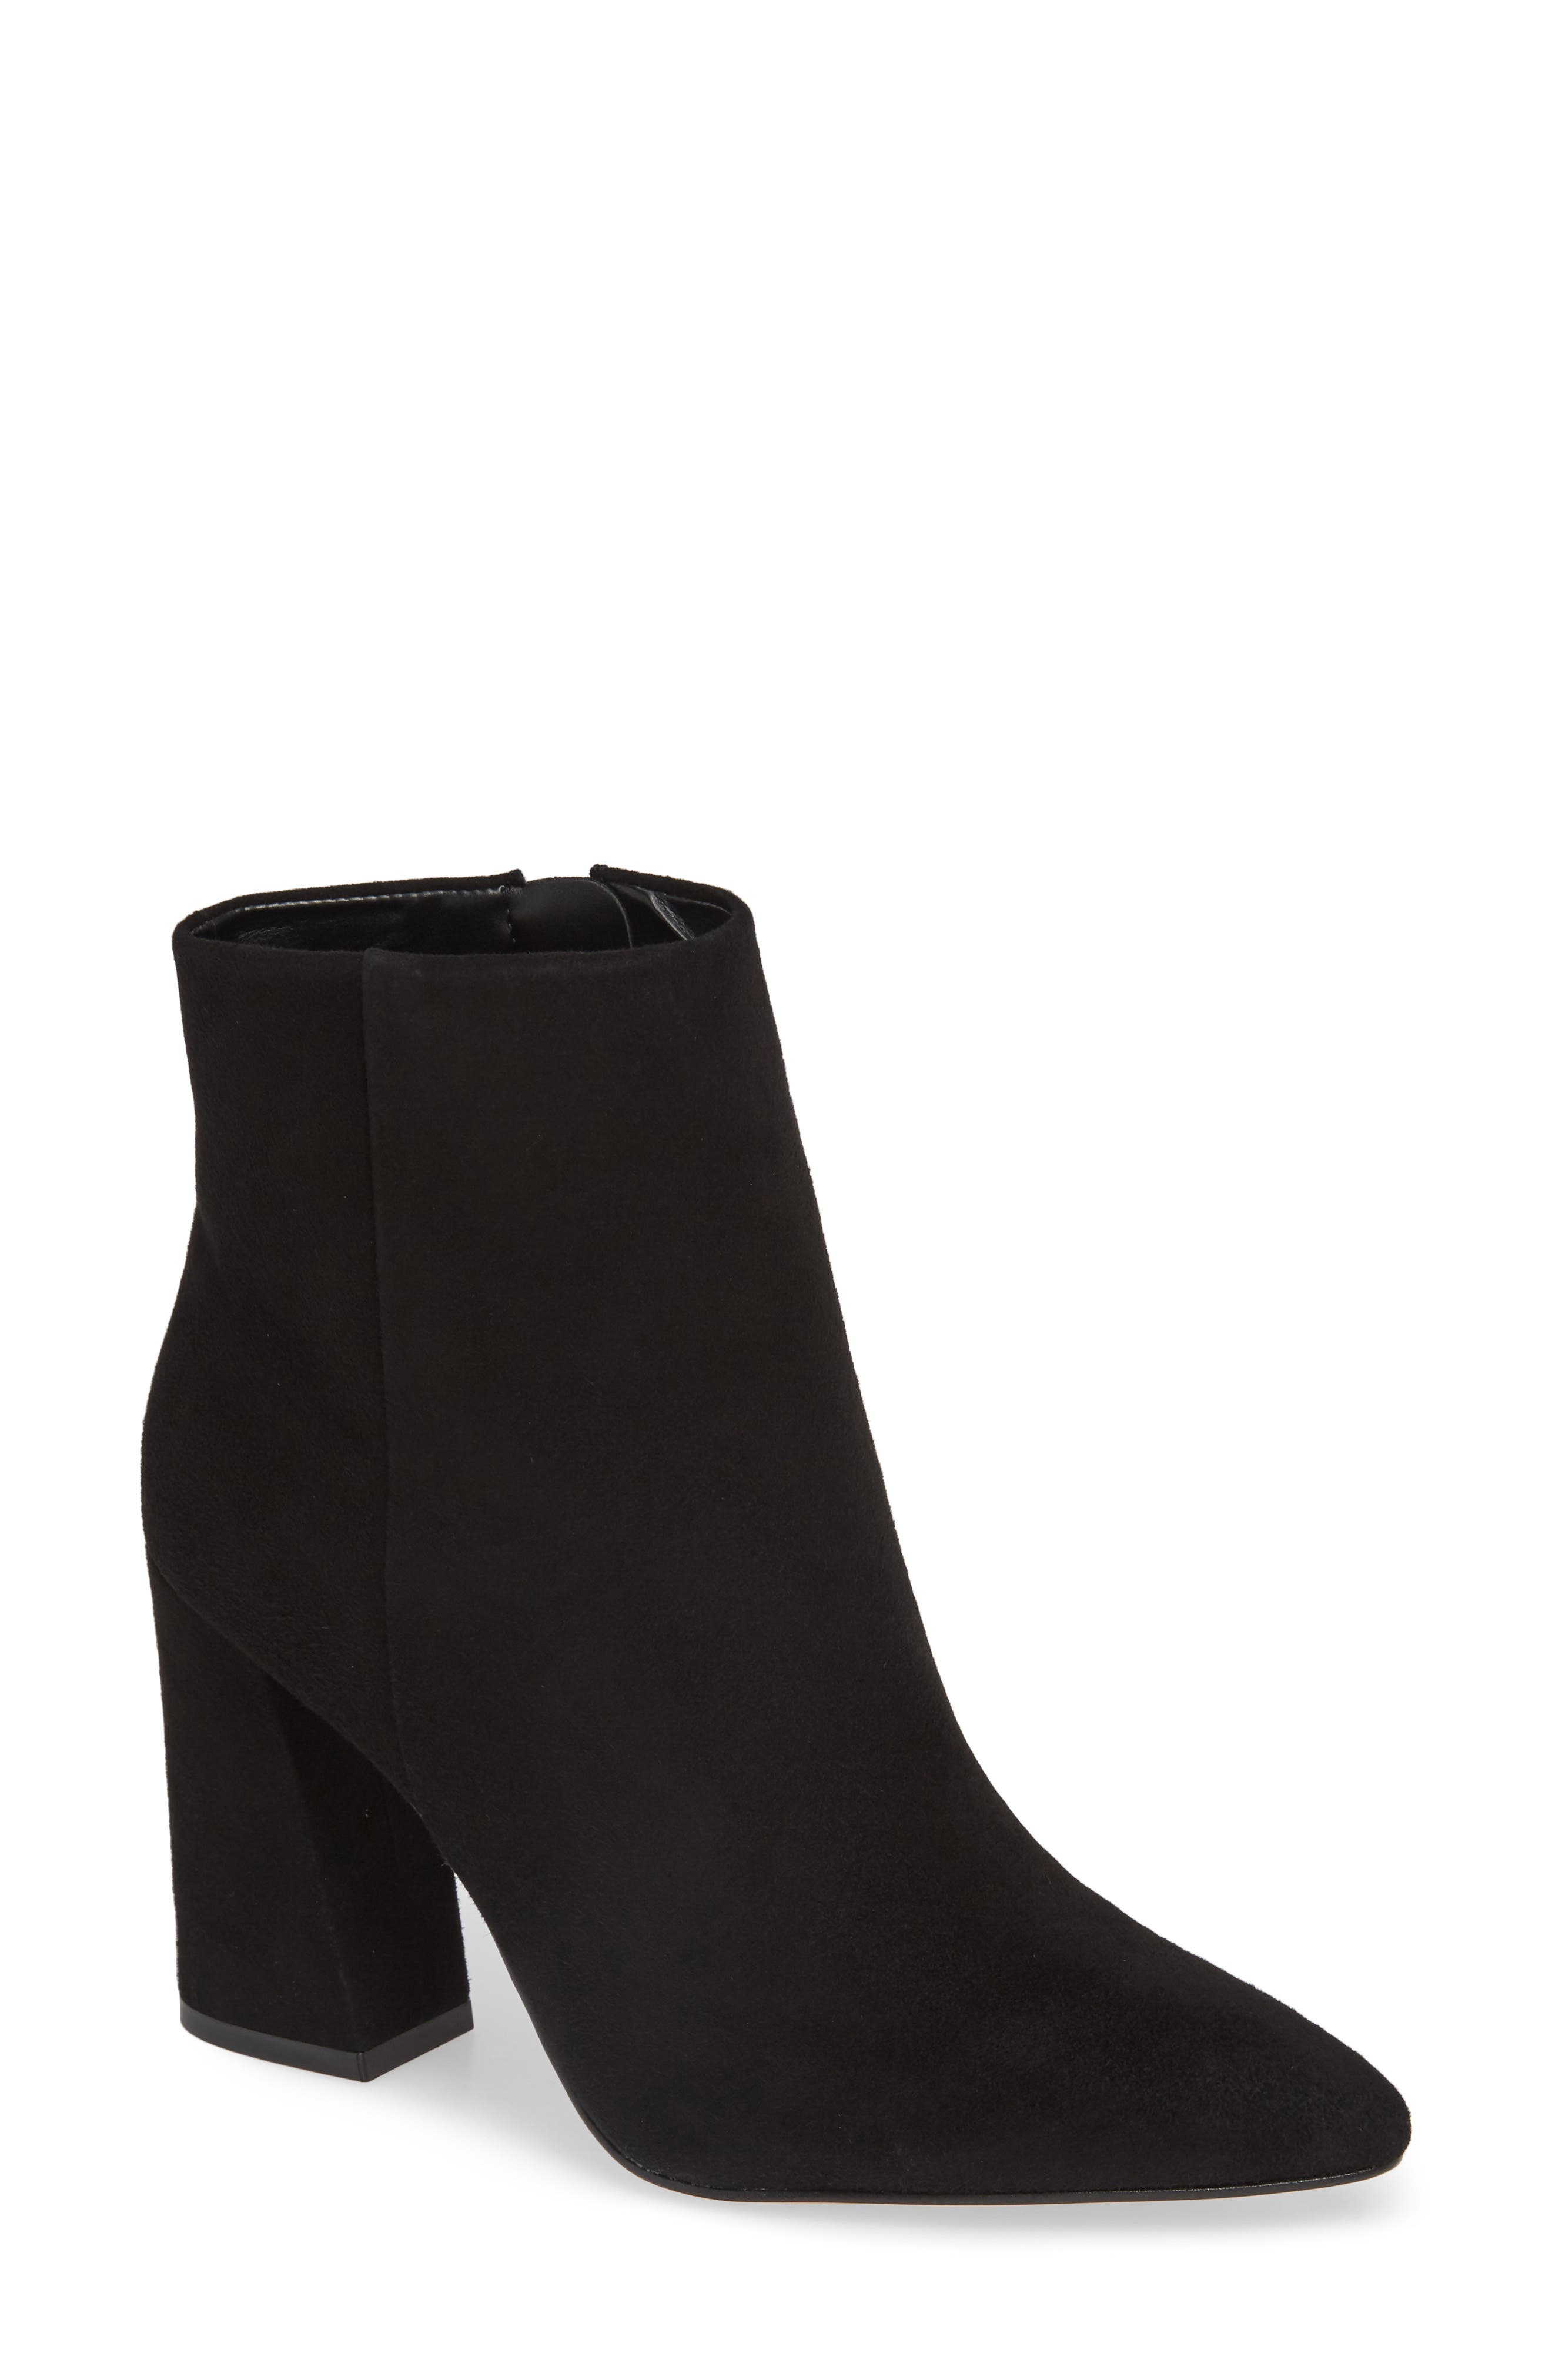 VINCE CAMUTO,                             Thelmin Genuine Calf Hair Bootie,                             Main thumbnail 1, color,                             003